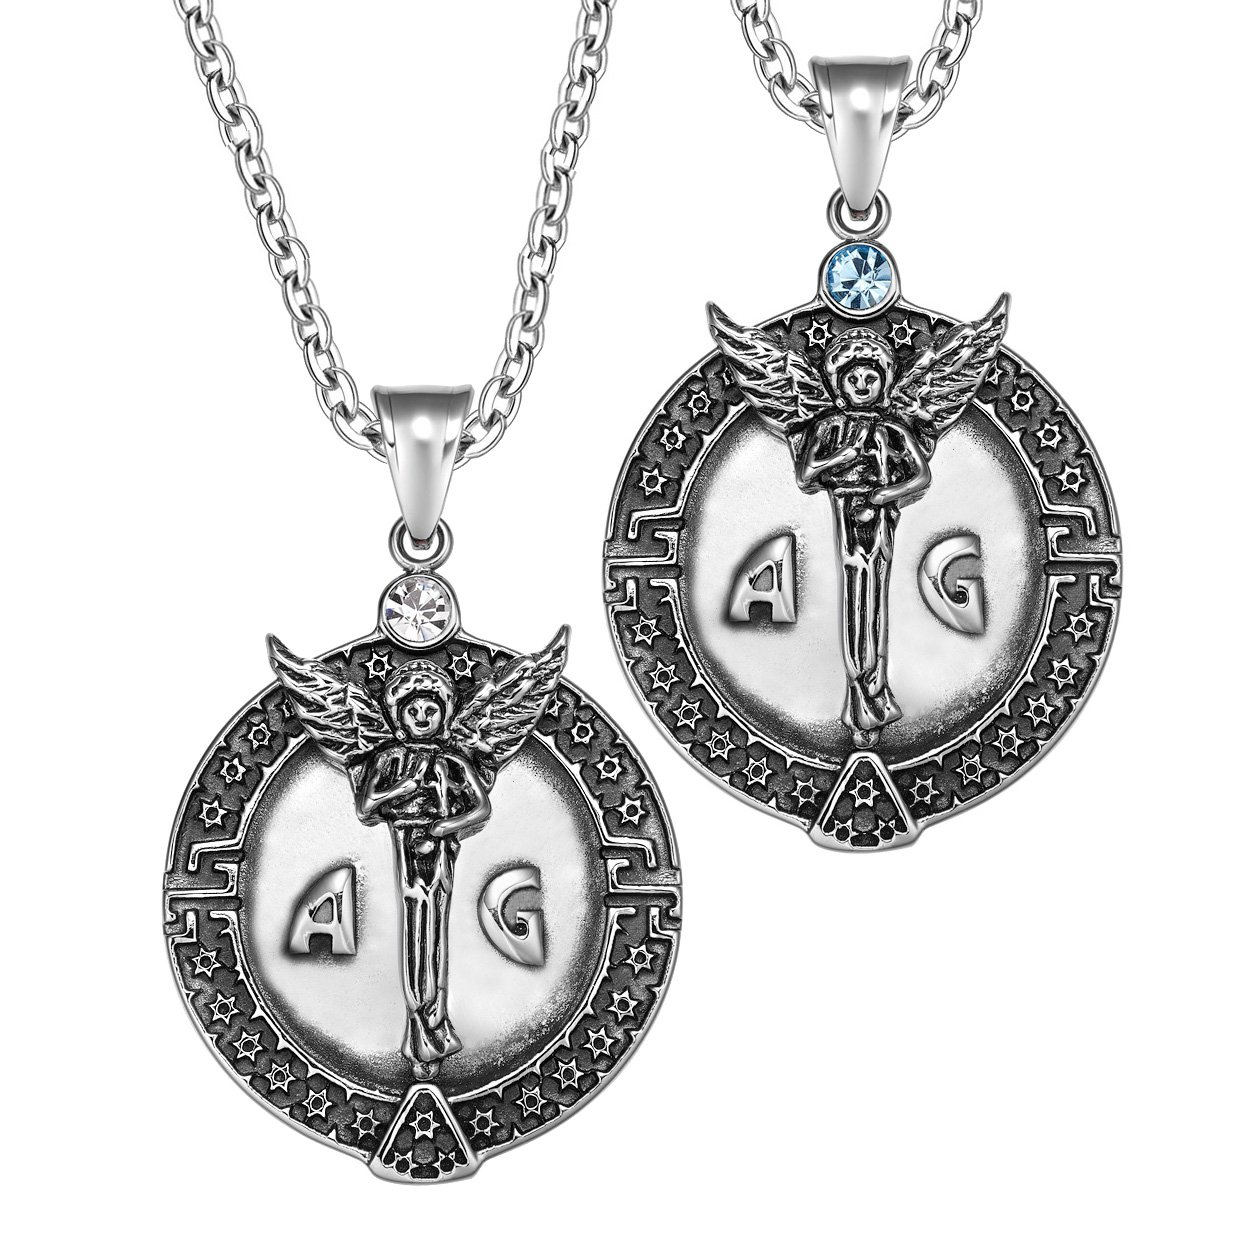 Archangel Michael Star of David Accents Love Copules or Best Friends Amulets Set Sky Blue White Necklaces